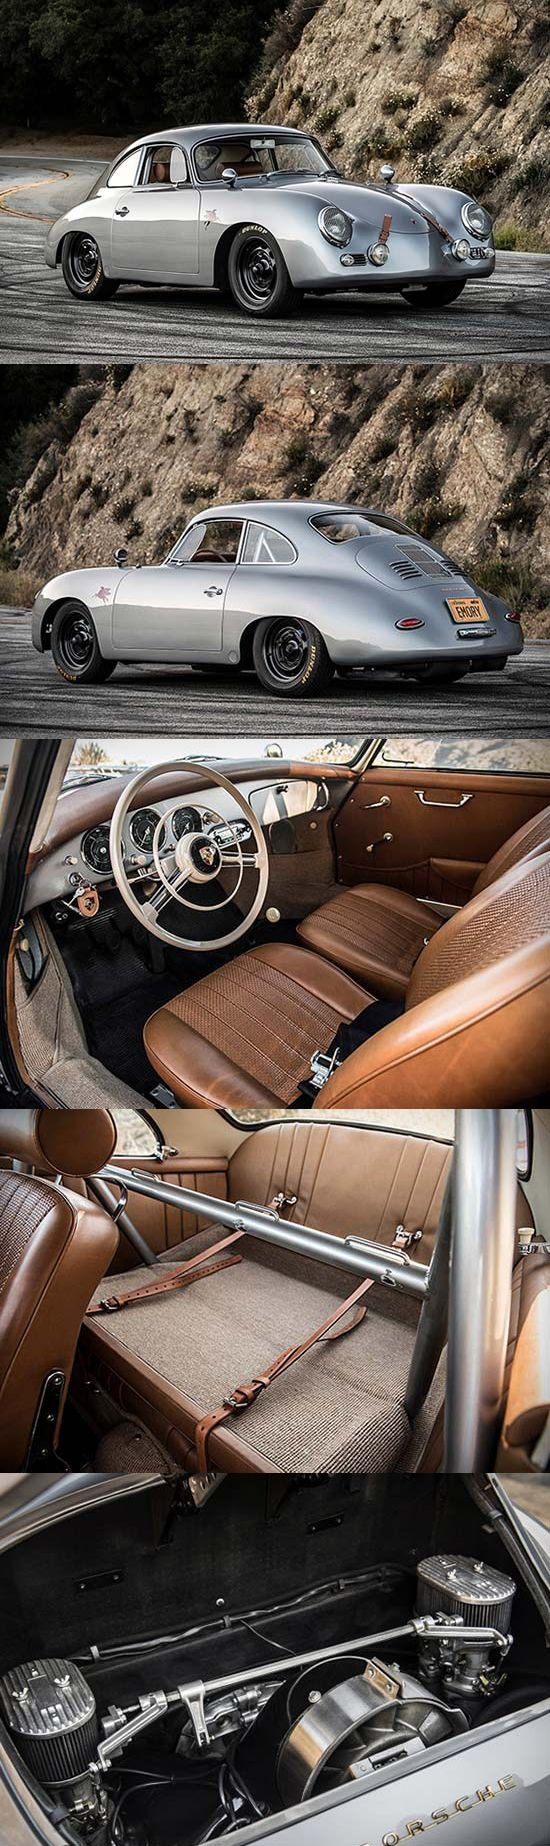 1959 Porsche 356 Emory Outlaw Is Out Of This World – Sylvia Heinrich